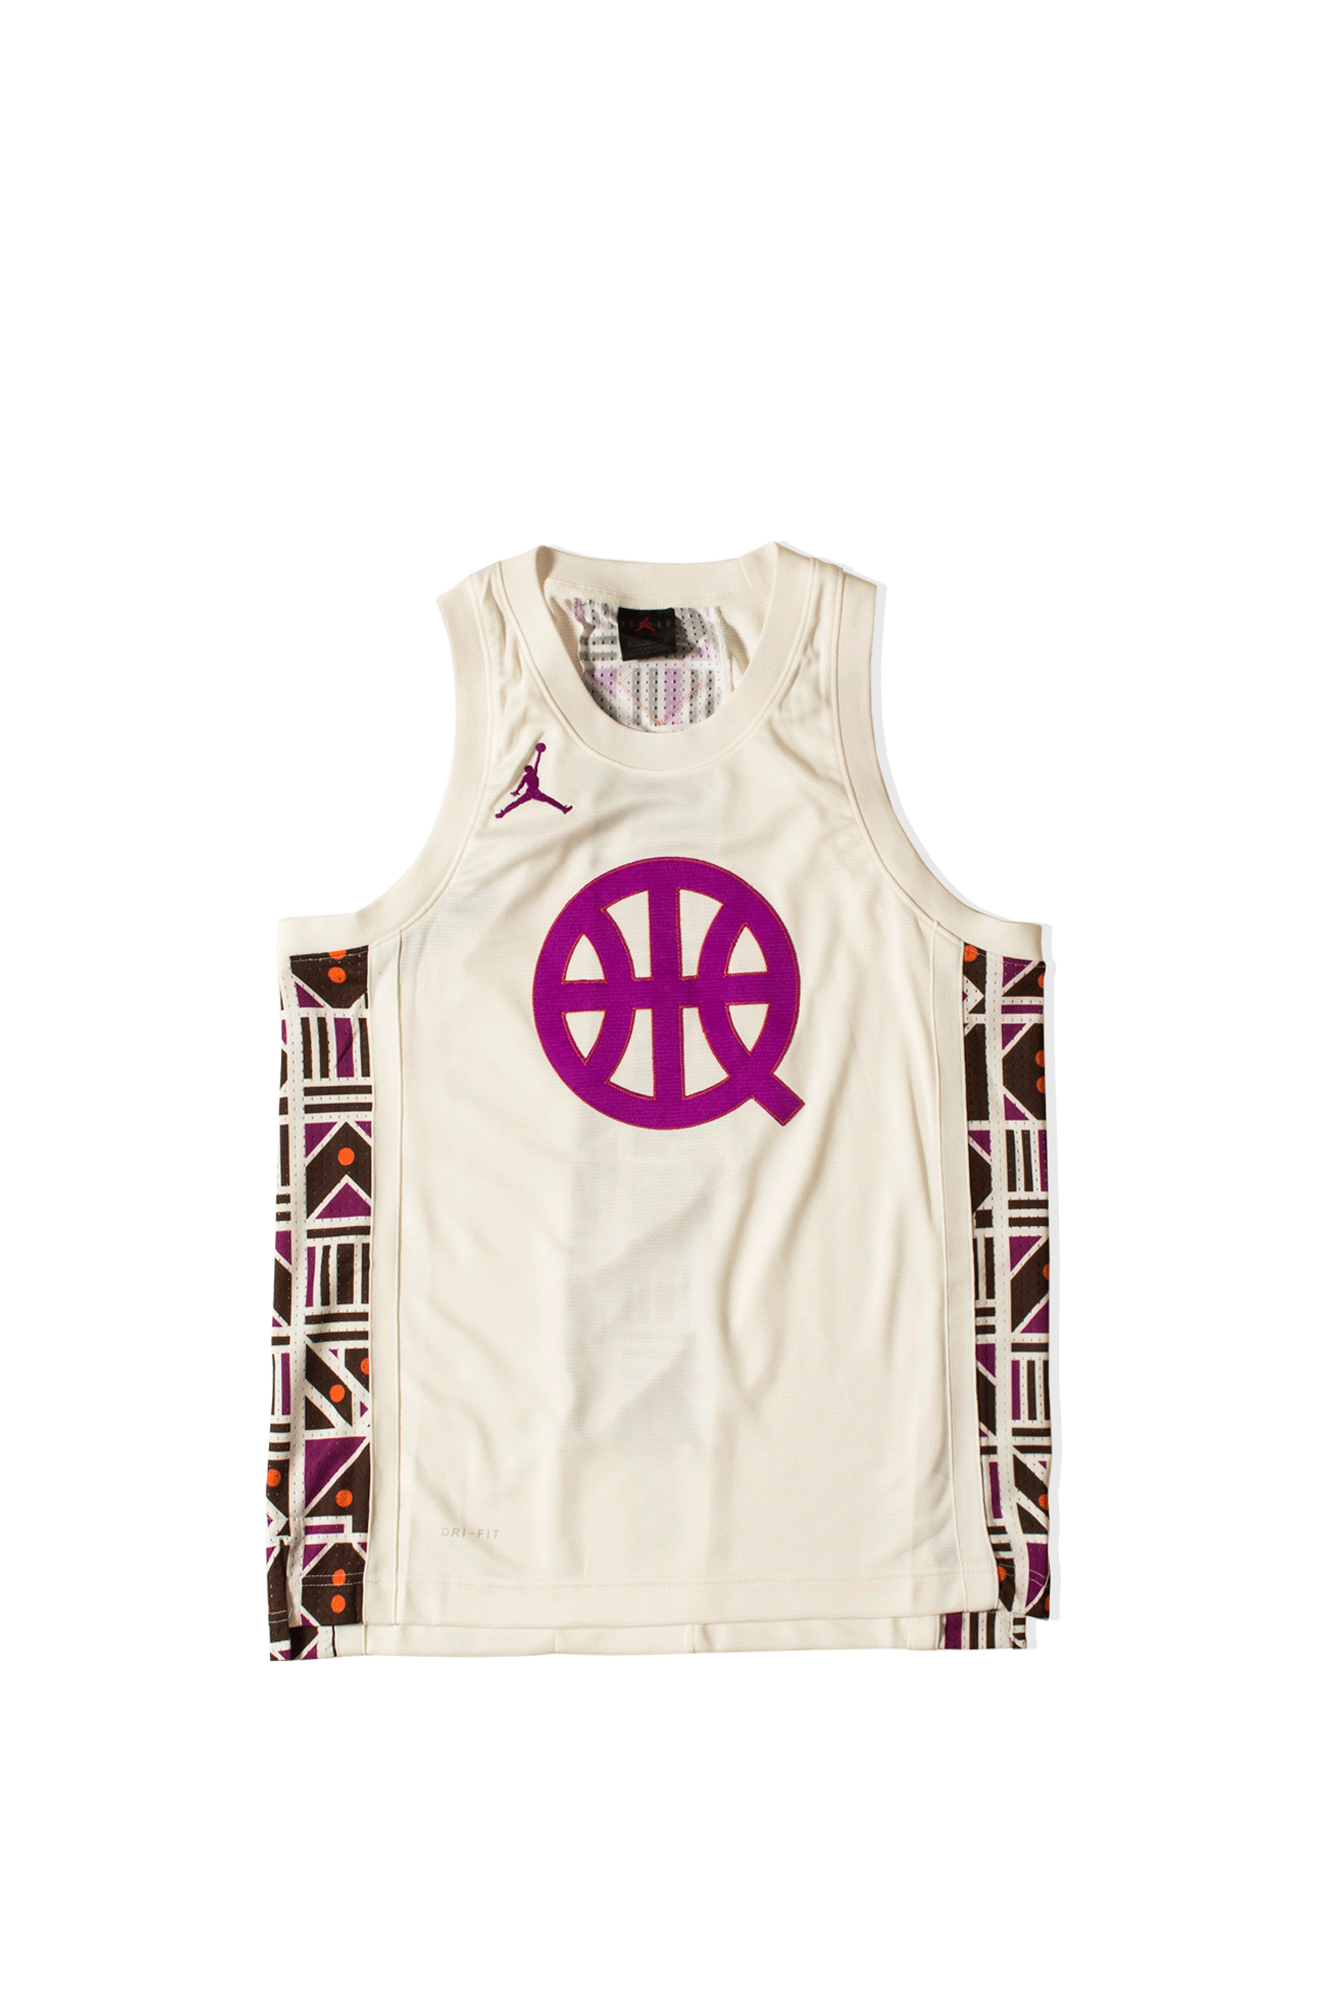 Jordan Brand Tank Top Quai 54 Air Basketball Jersey White CW4094-#000#133#S - One Block Down